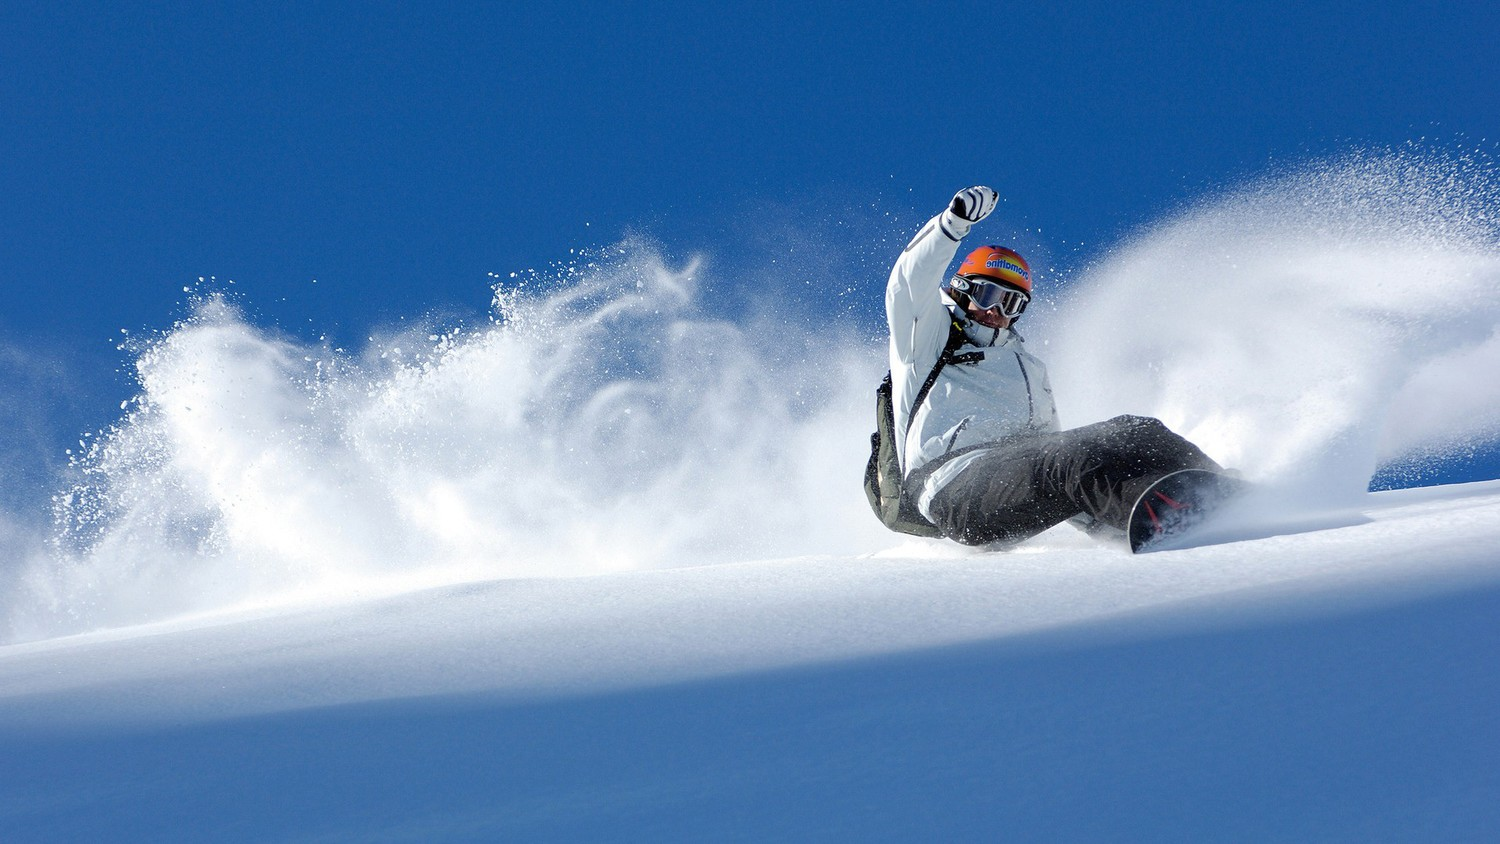 HD Quality Wallpaper   Collection: Artistic, 1500x844 Snowboarding